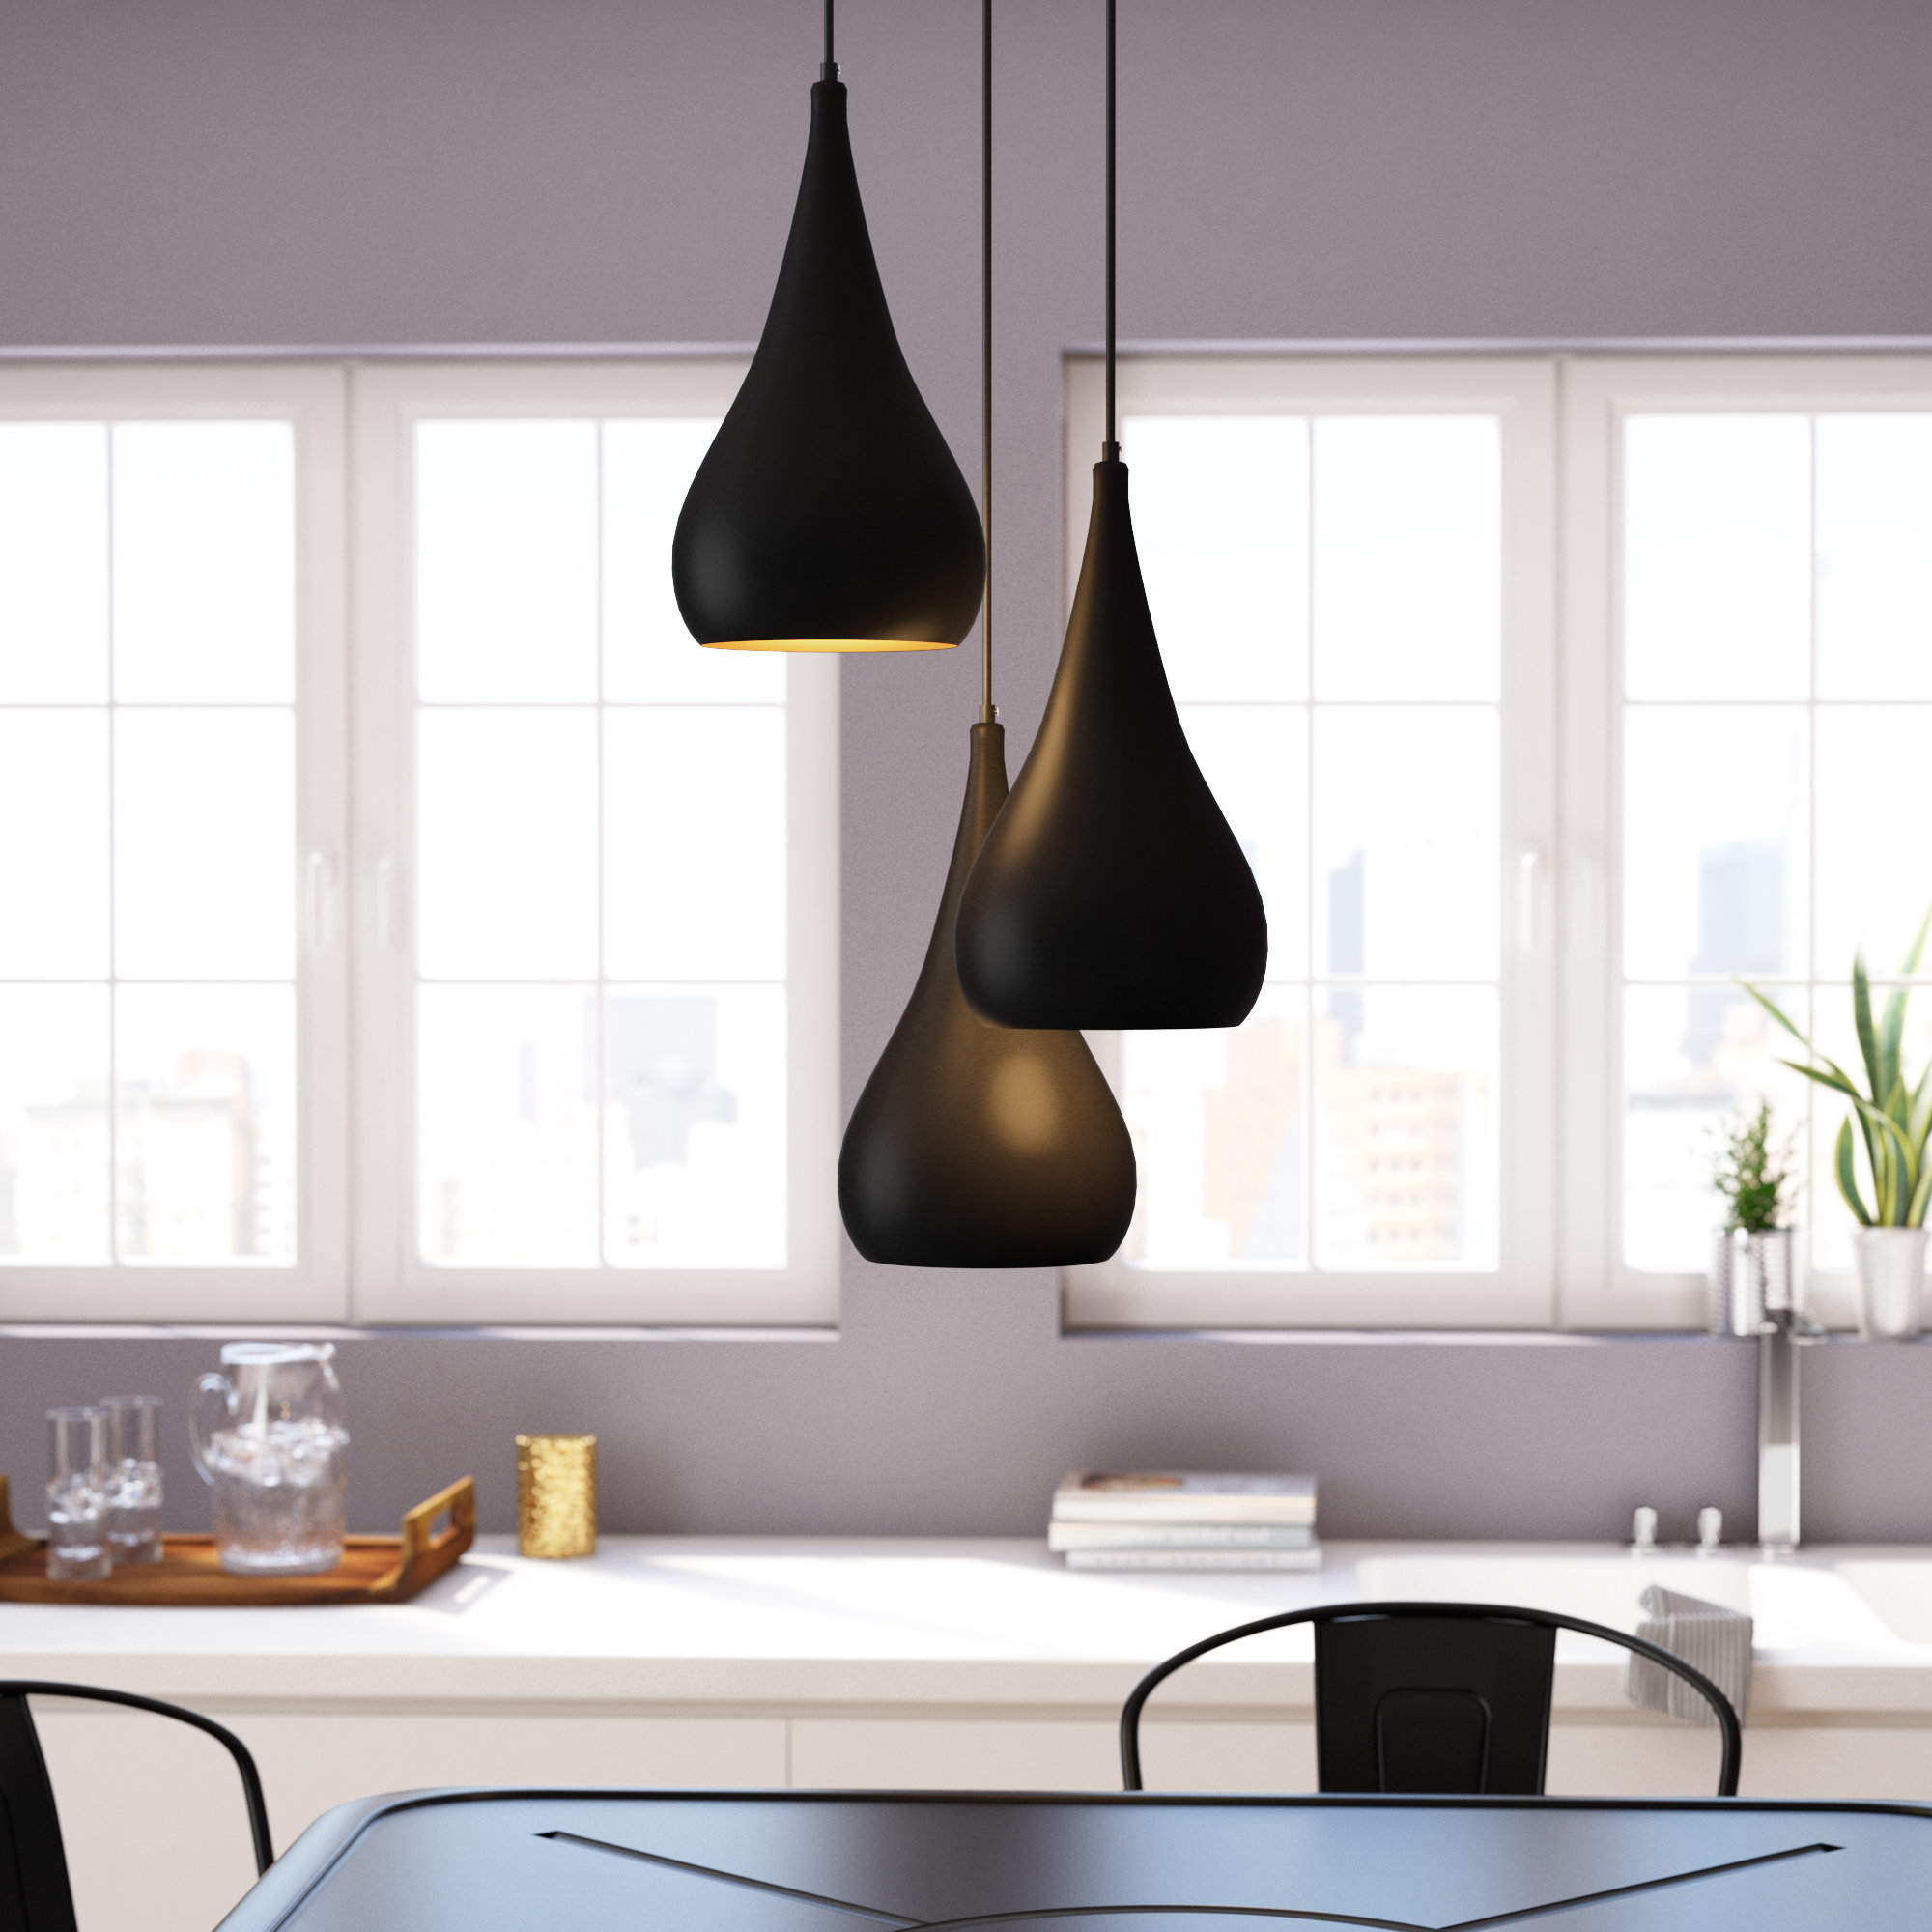 3 Light Cluster Pendant Lighting You'll Love In 2019 (Gallery 18 of 20)